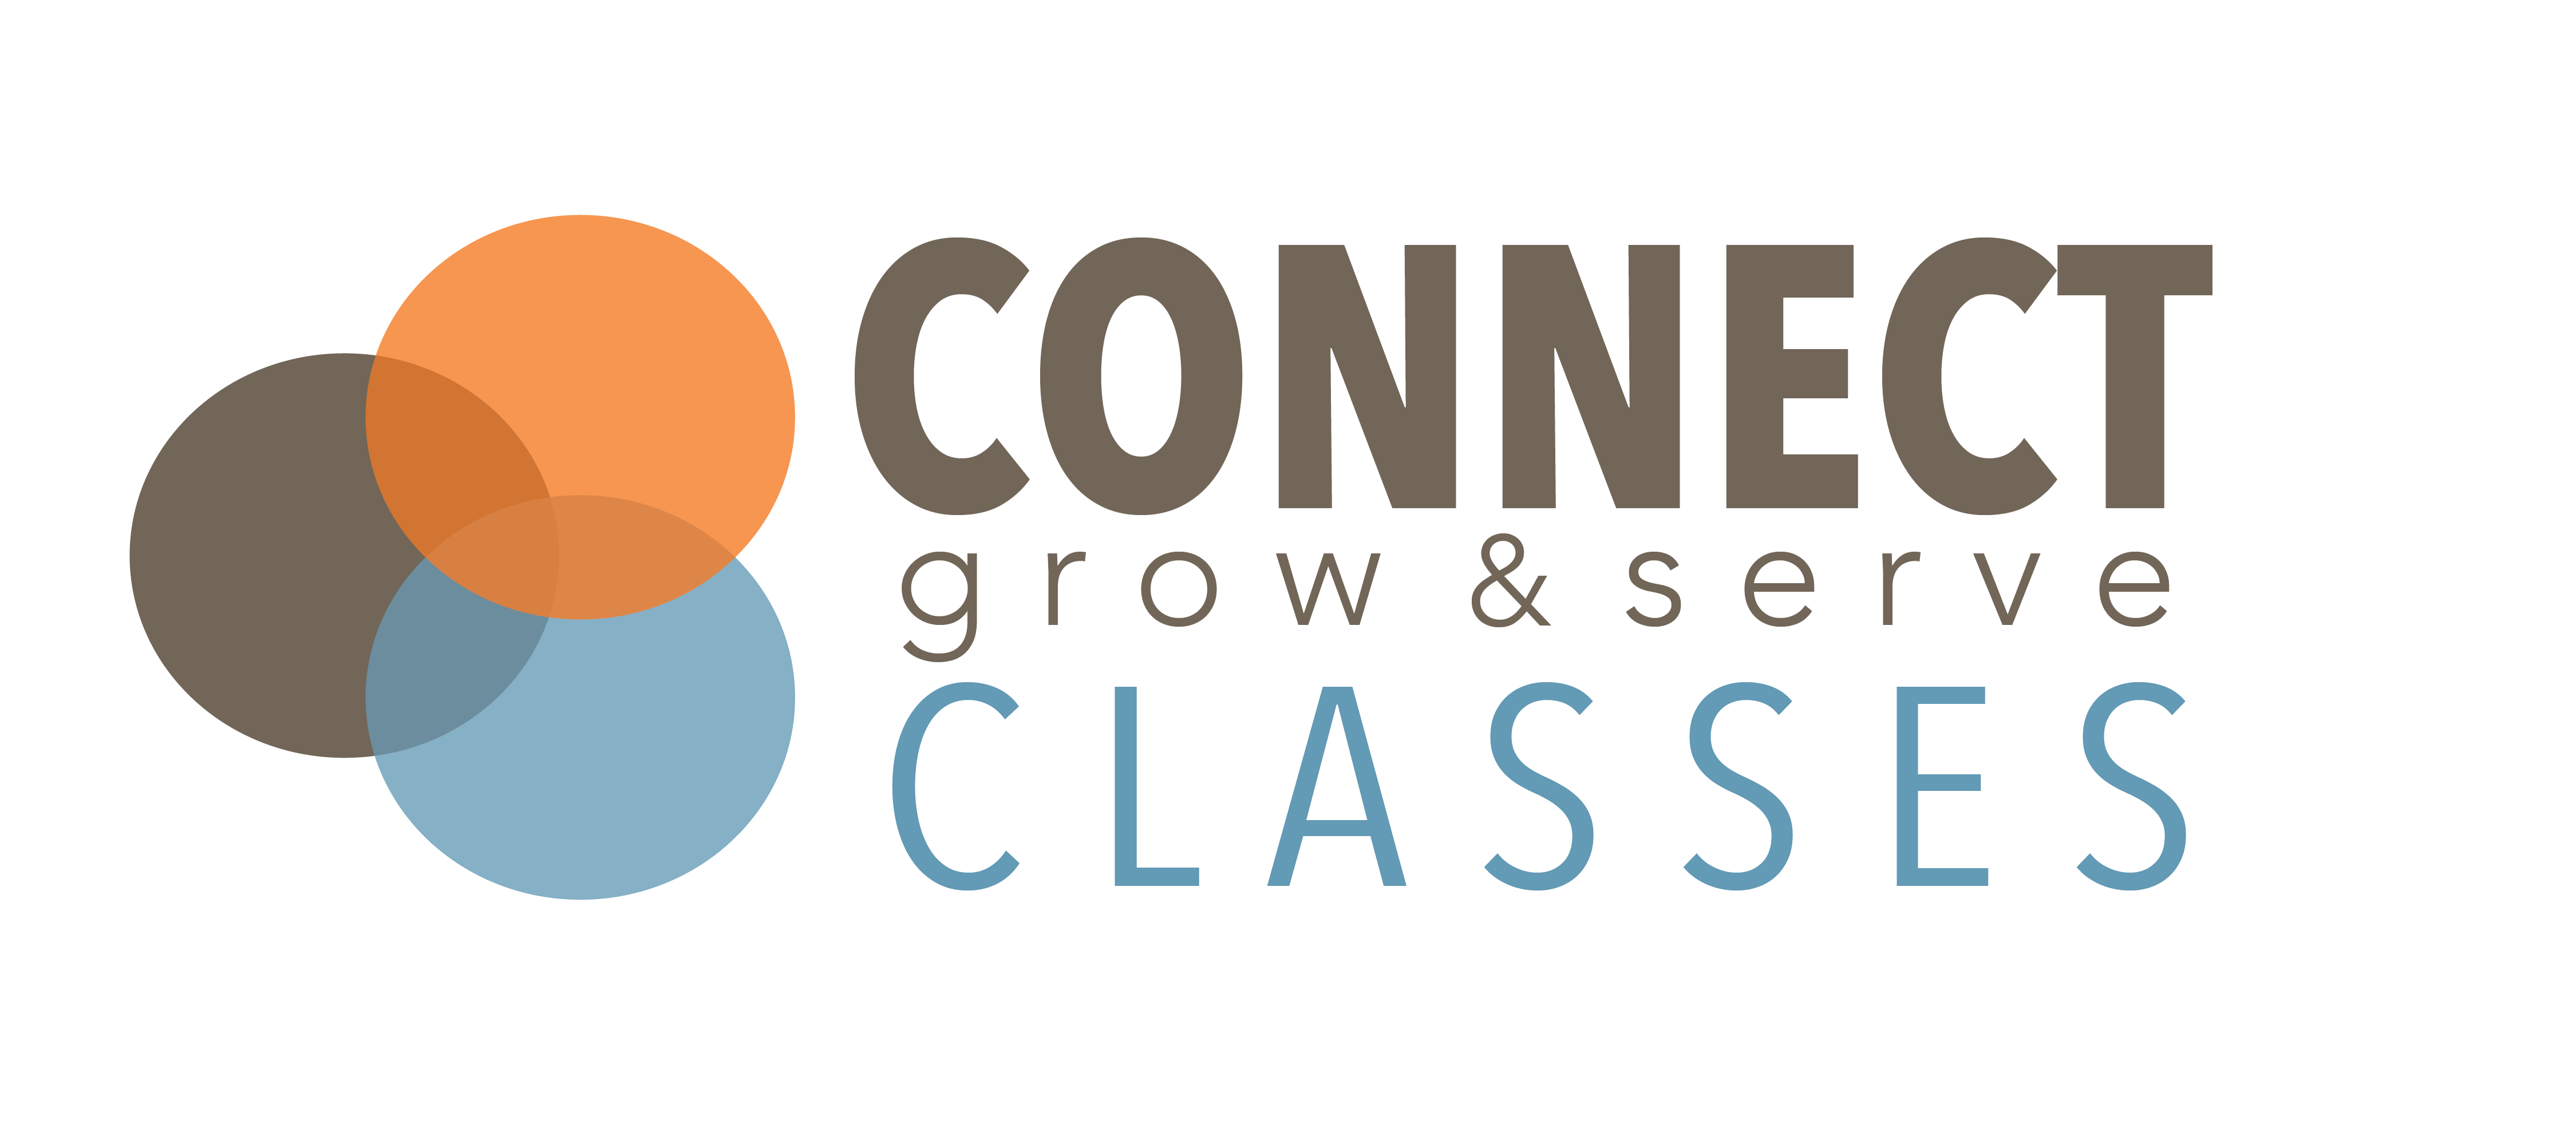 Connectclasseslogo 2015